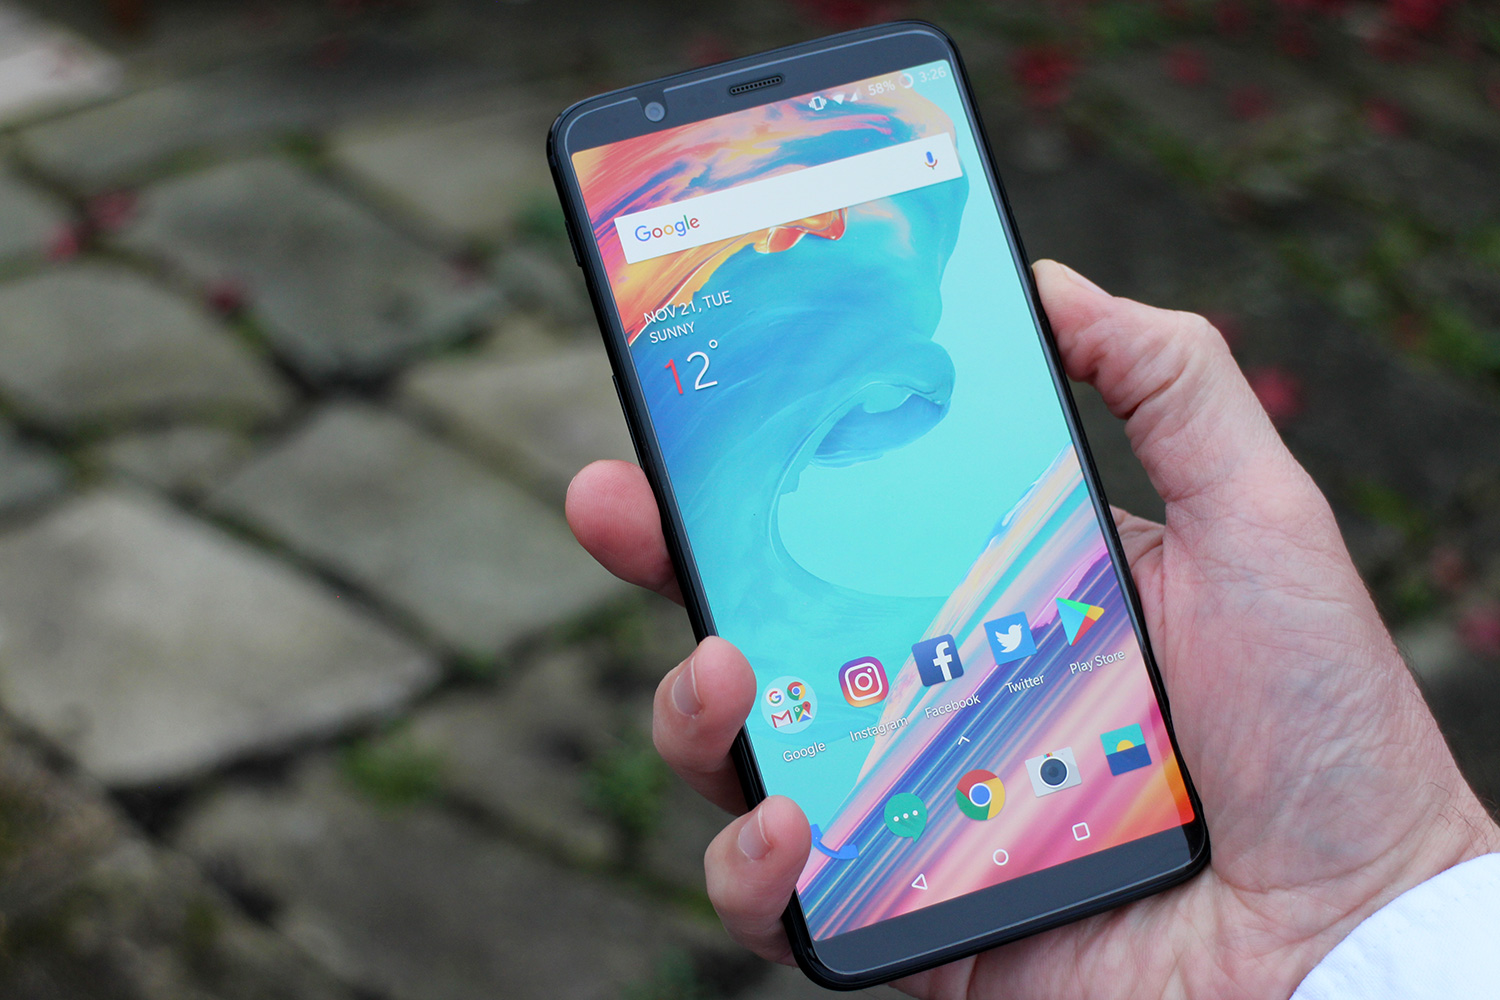 OnePlus 6 flagship to release in Q2 2018 with Snapdragon 845 SoC